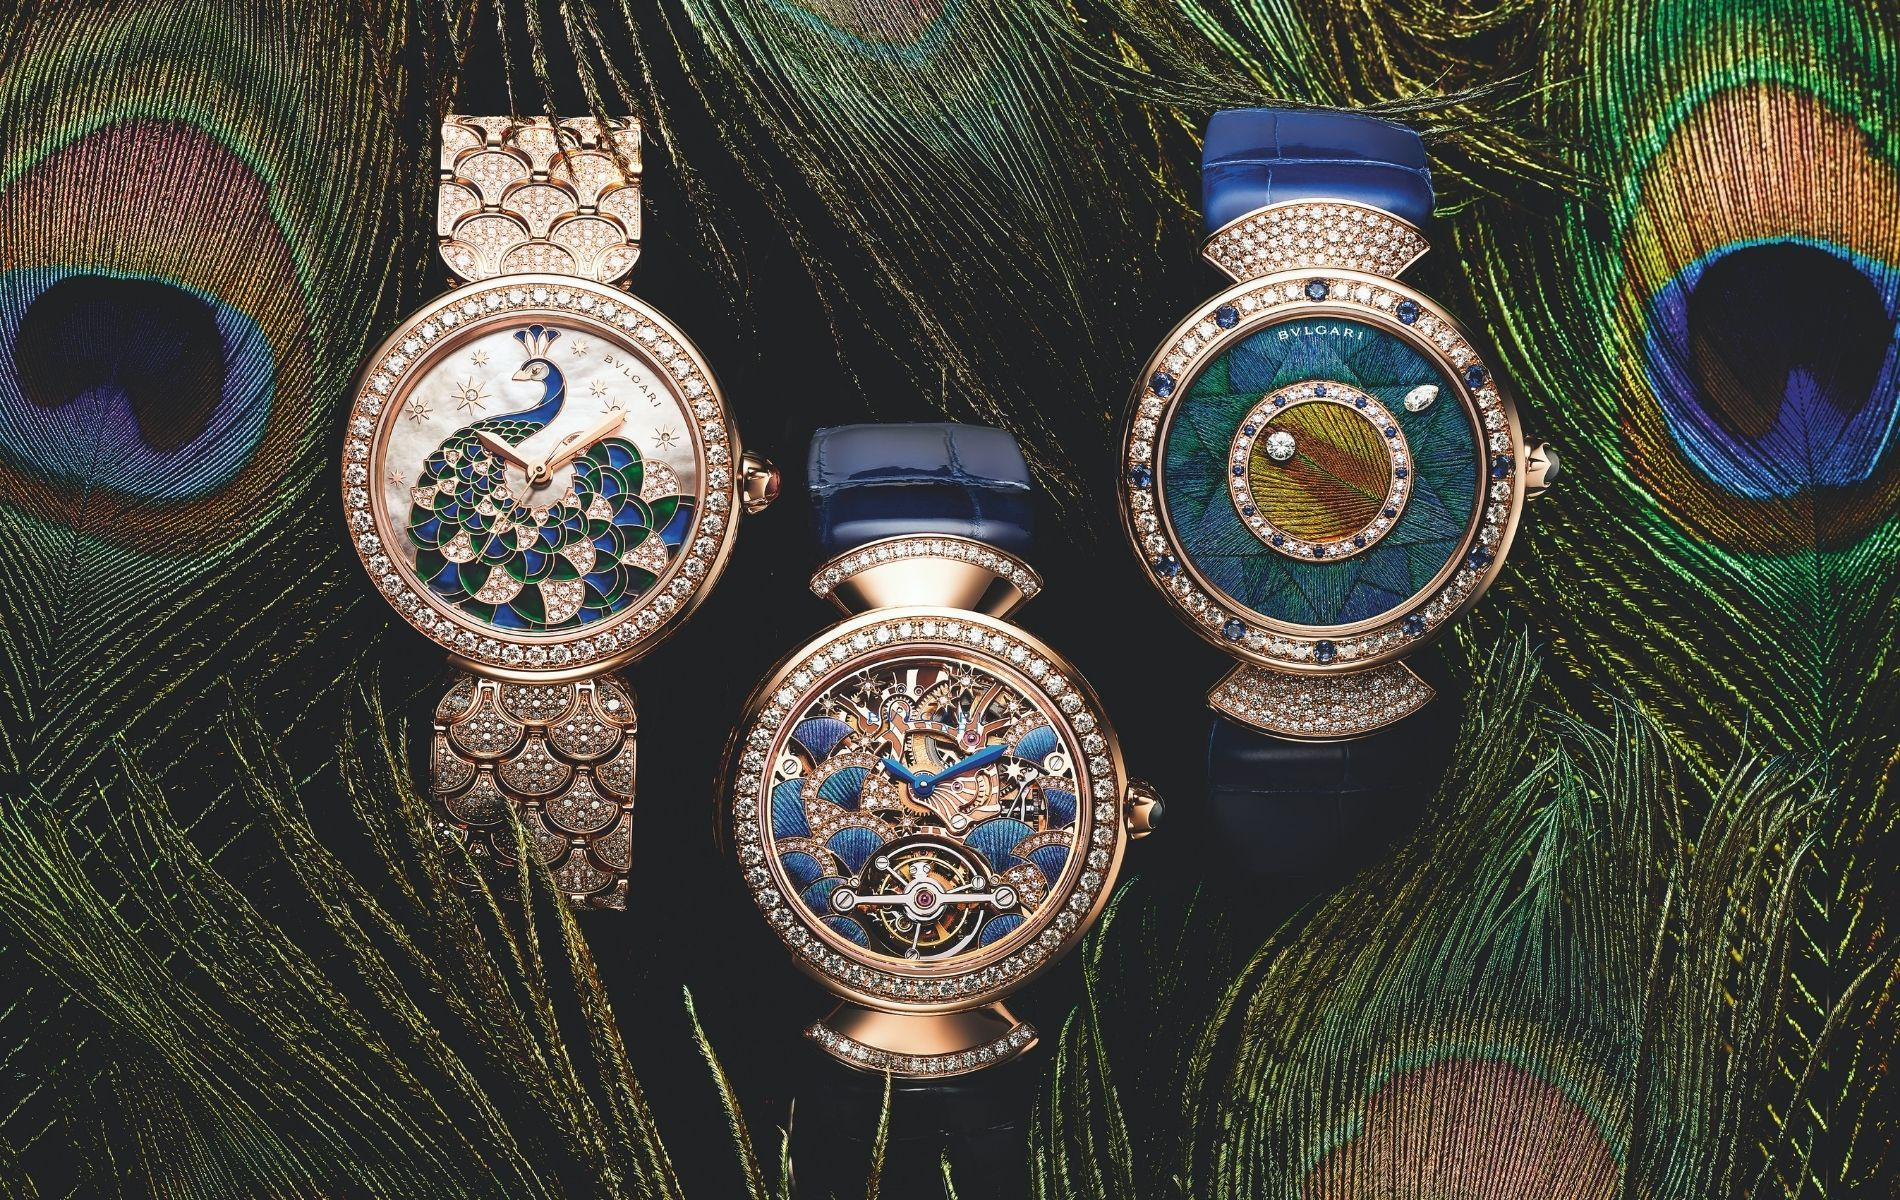 LVMH Watch Week 2021: These Gold Bulgari Watches Feature Actual Peacock Feathers